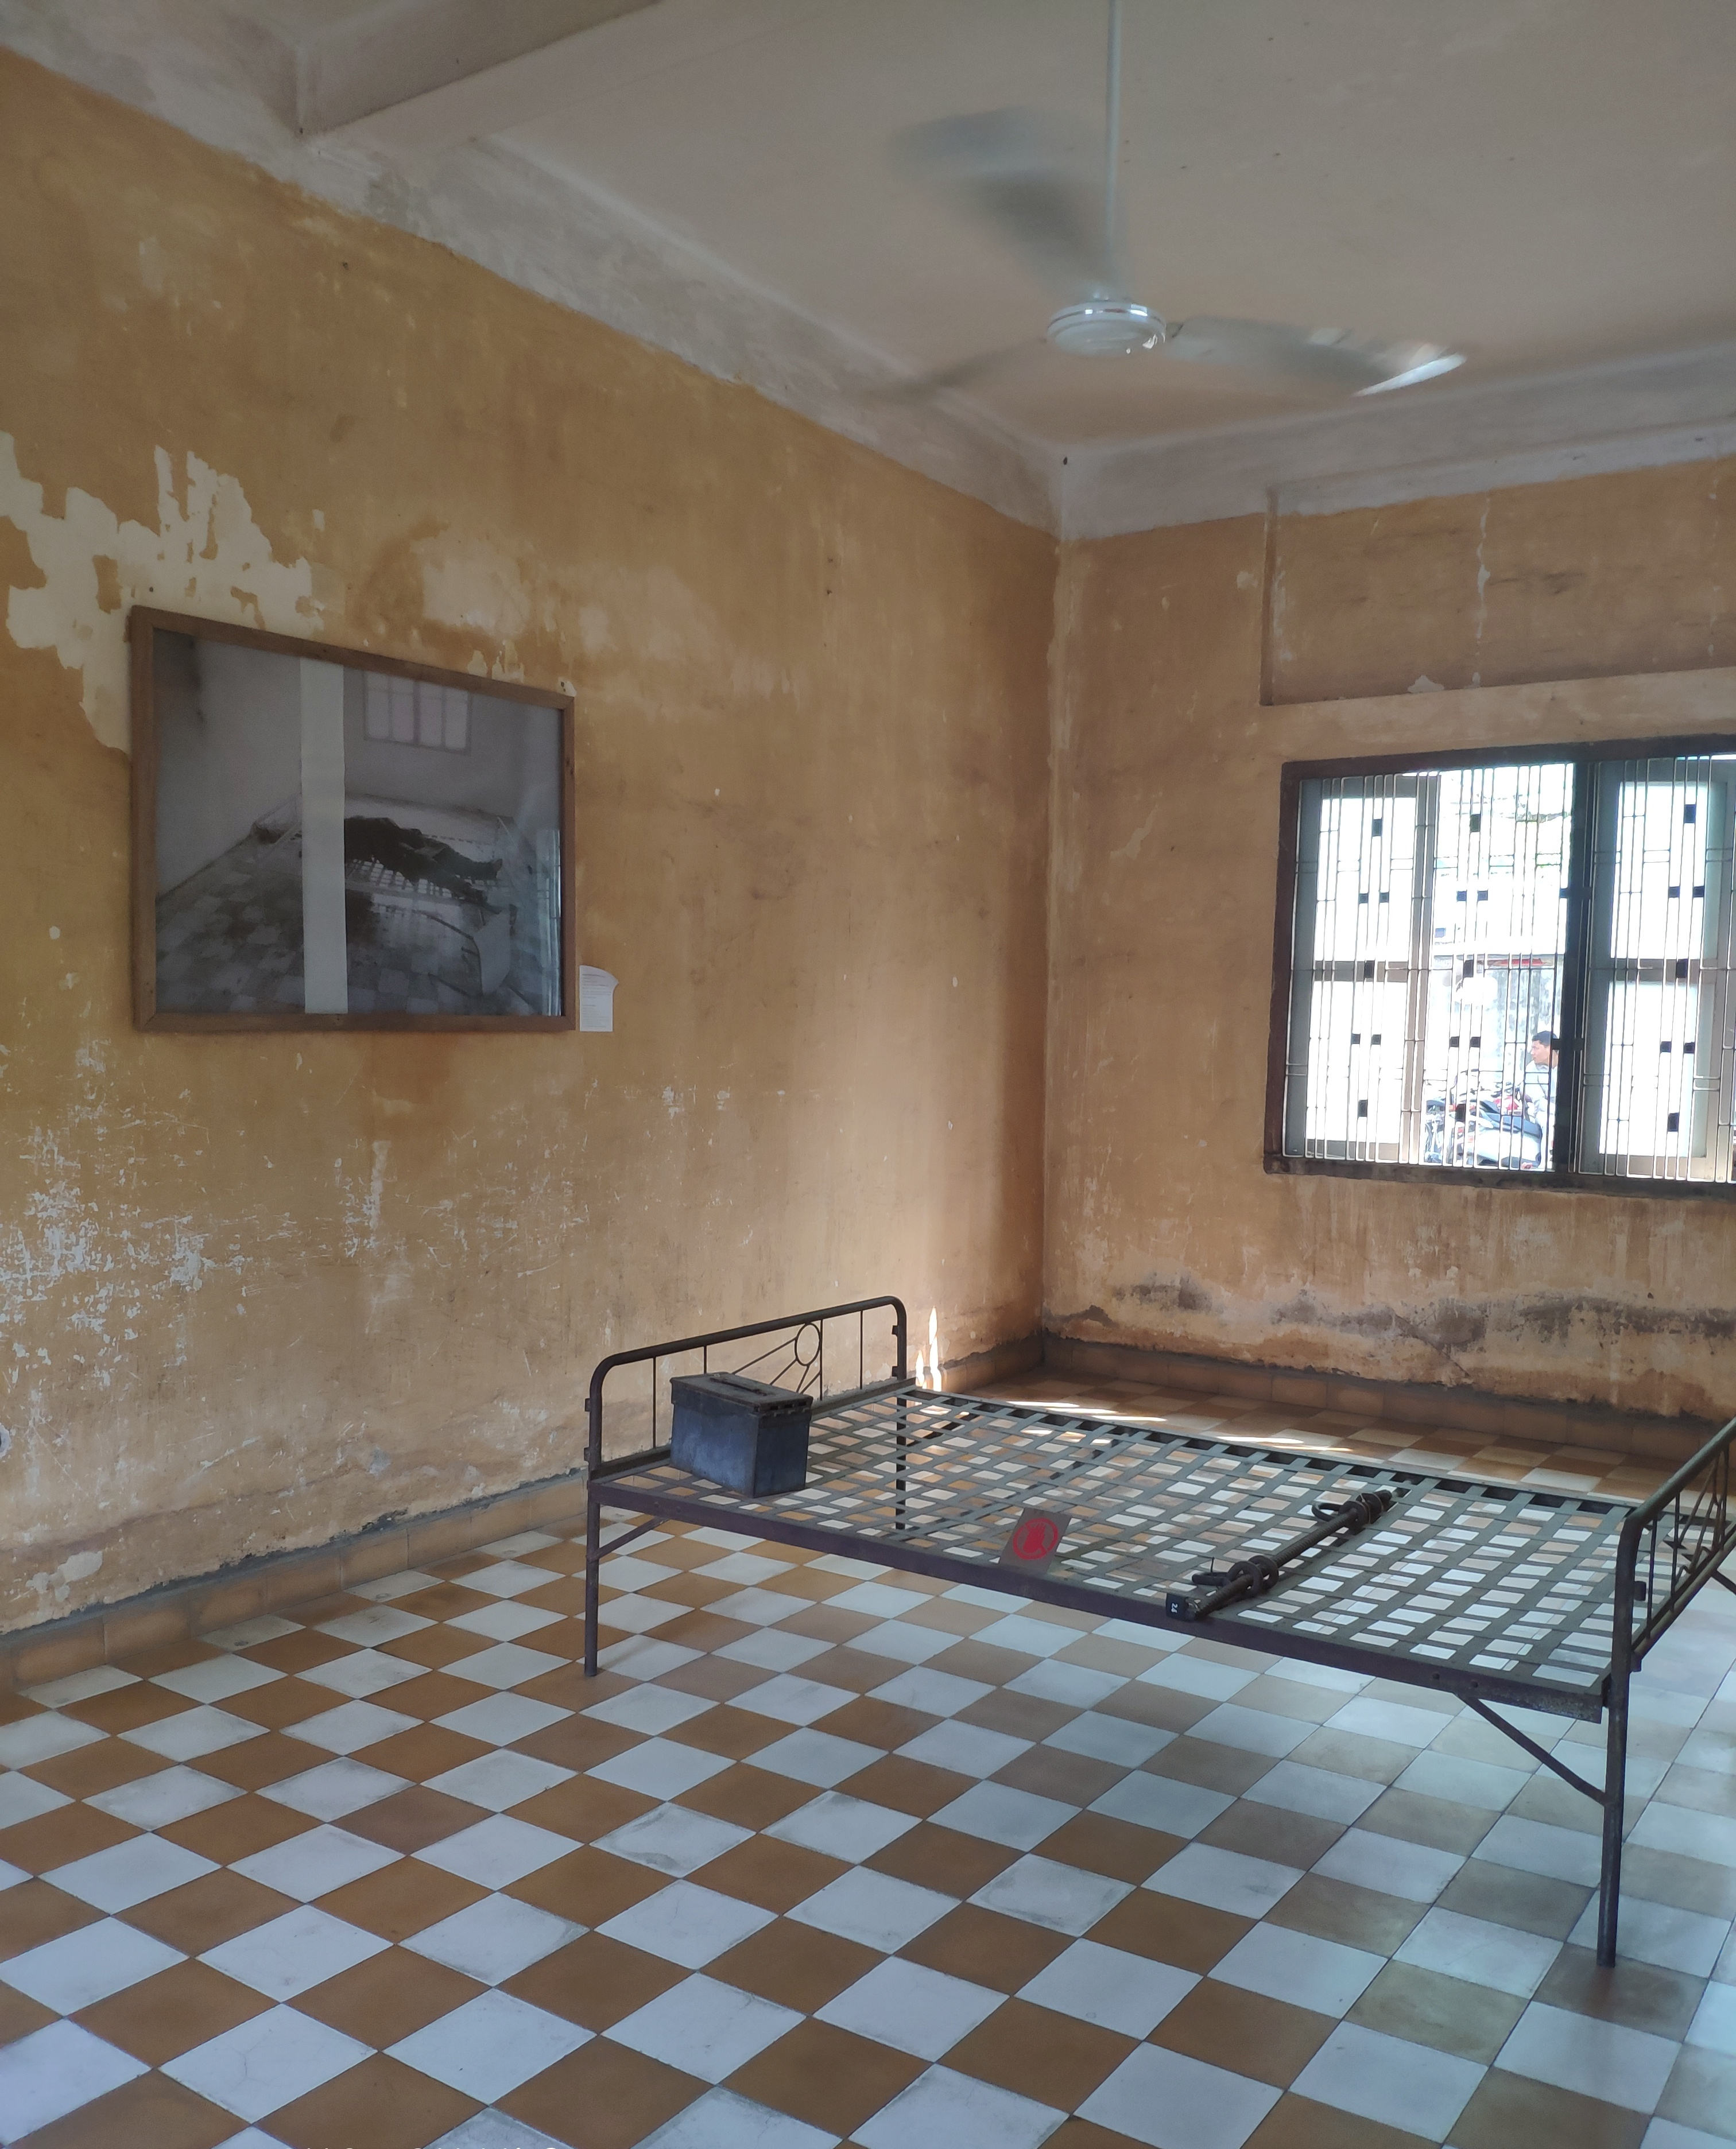 One of the cells at the Genocide Museum, formerly known as Prison S21